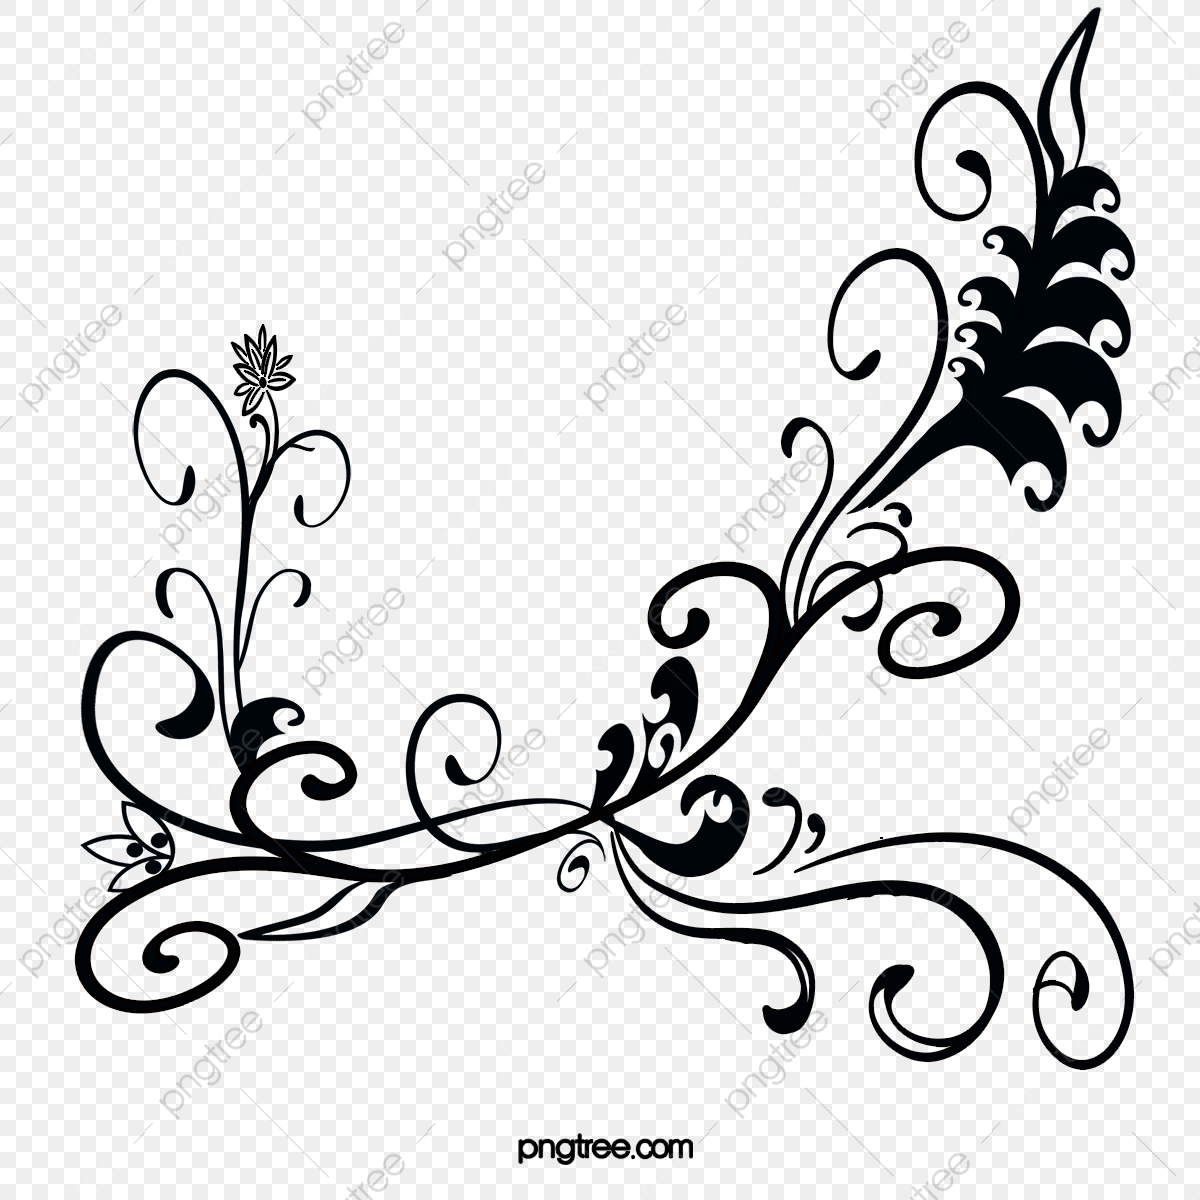 Floral Patterns Black Decoration Png Transparent Clipart Image